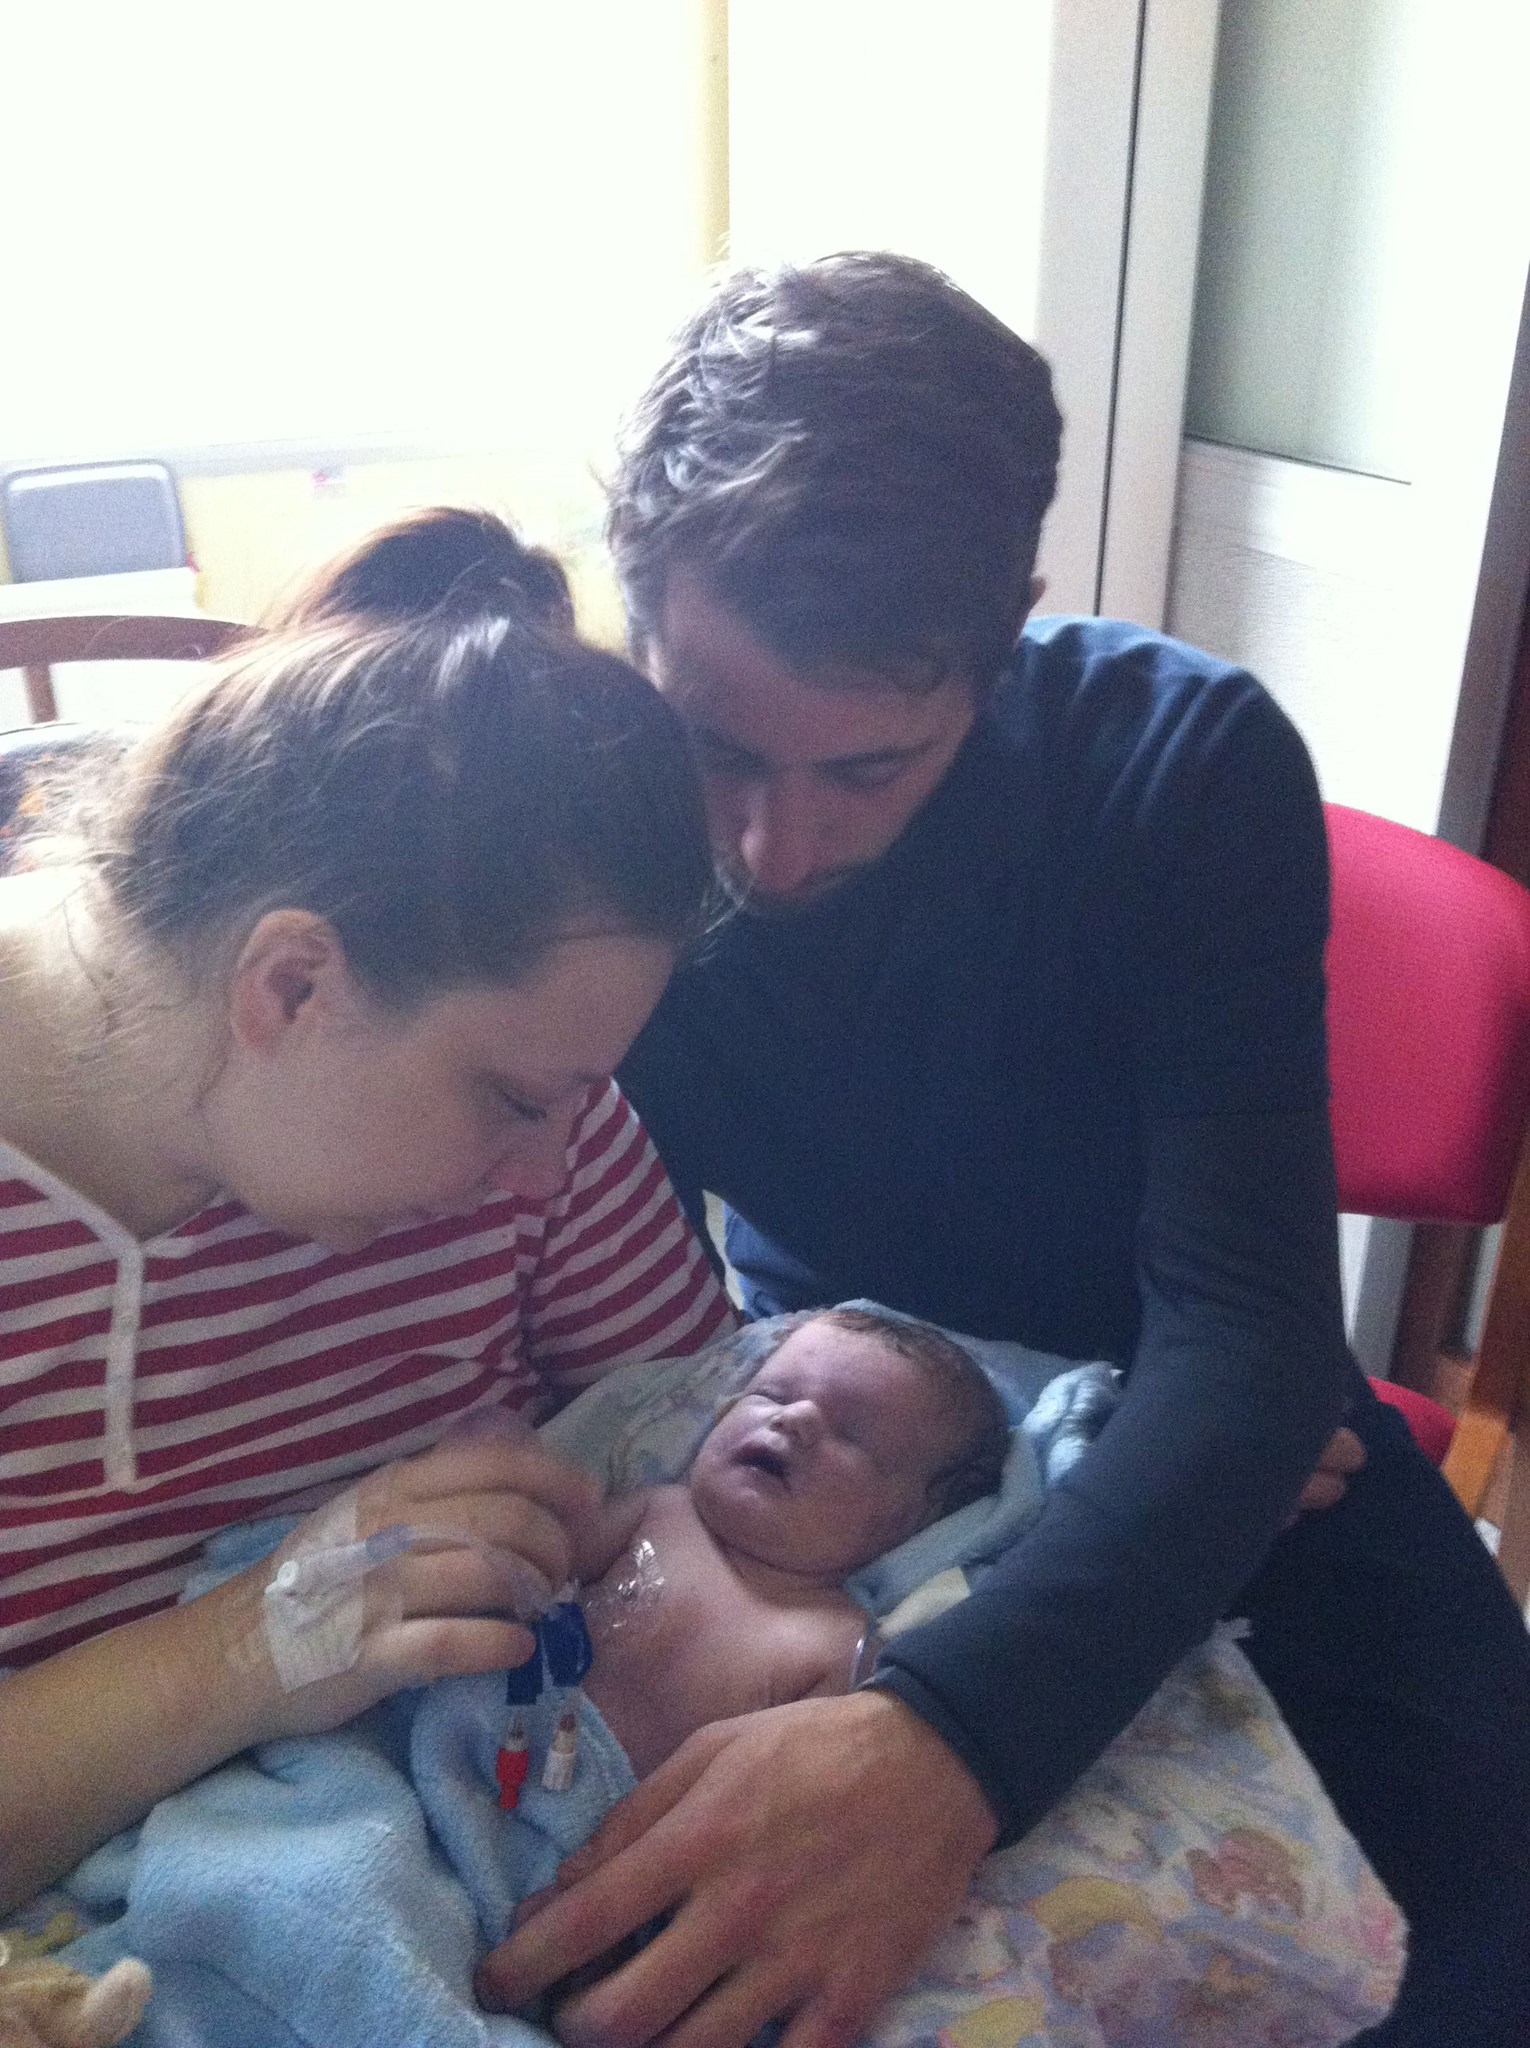 Midwife caught our Moments together, so Thankful.